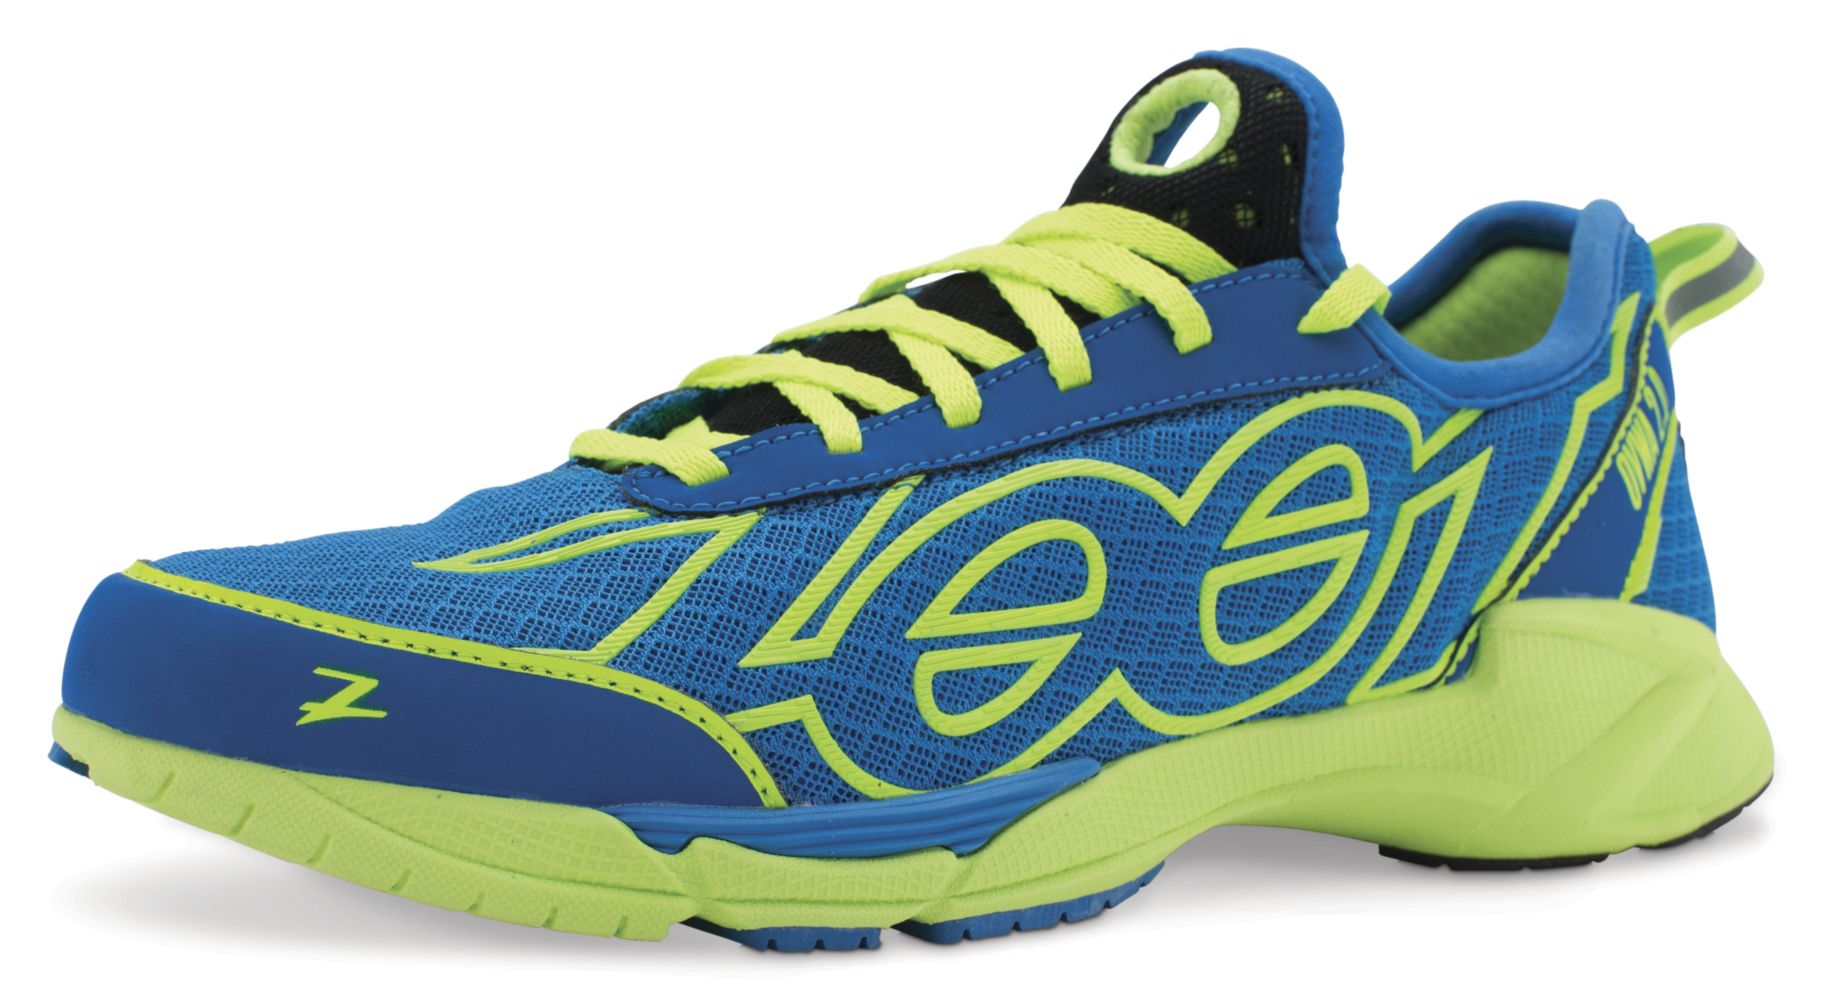 Zoot Running Shoes For Sale 24